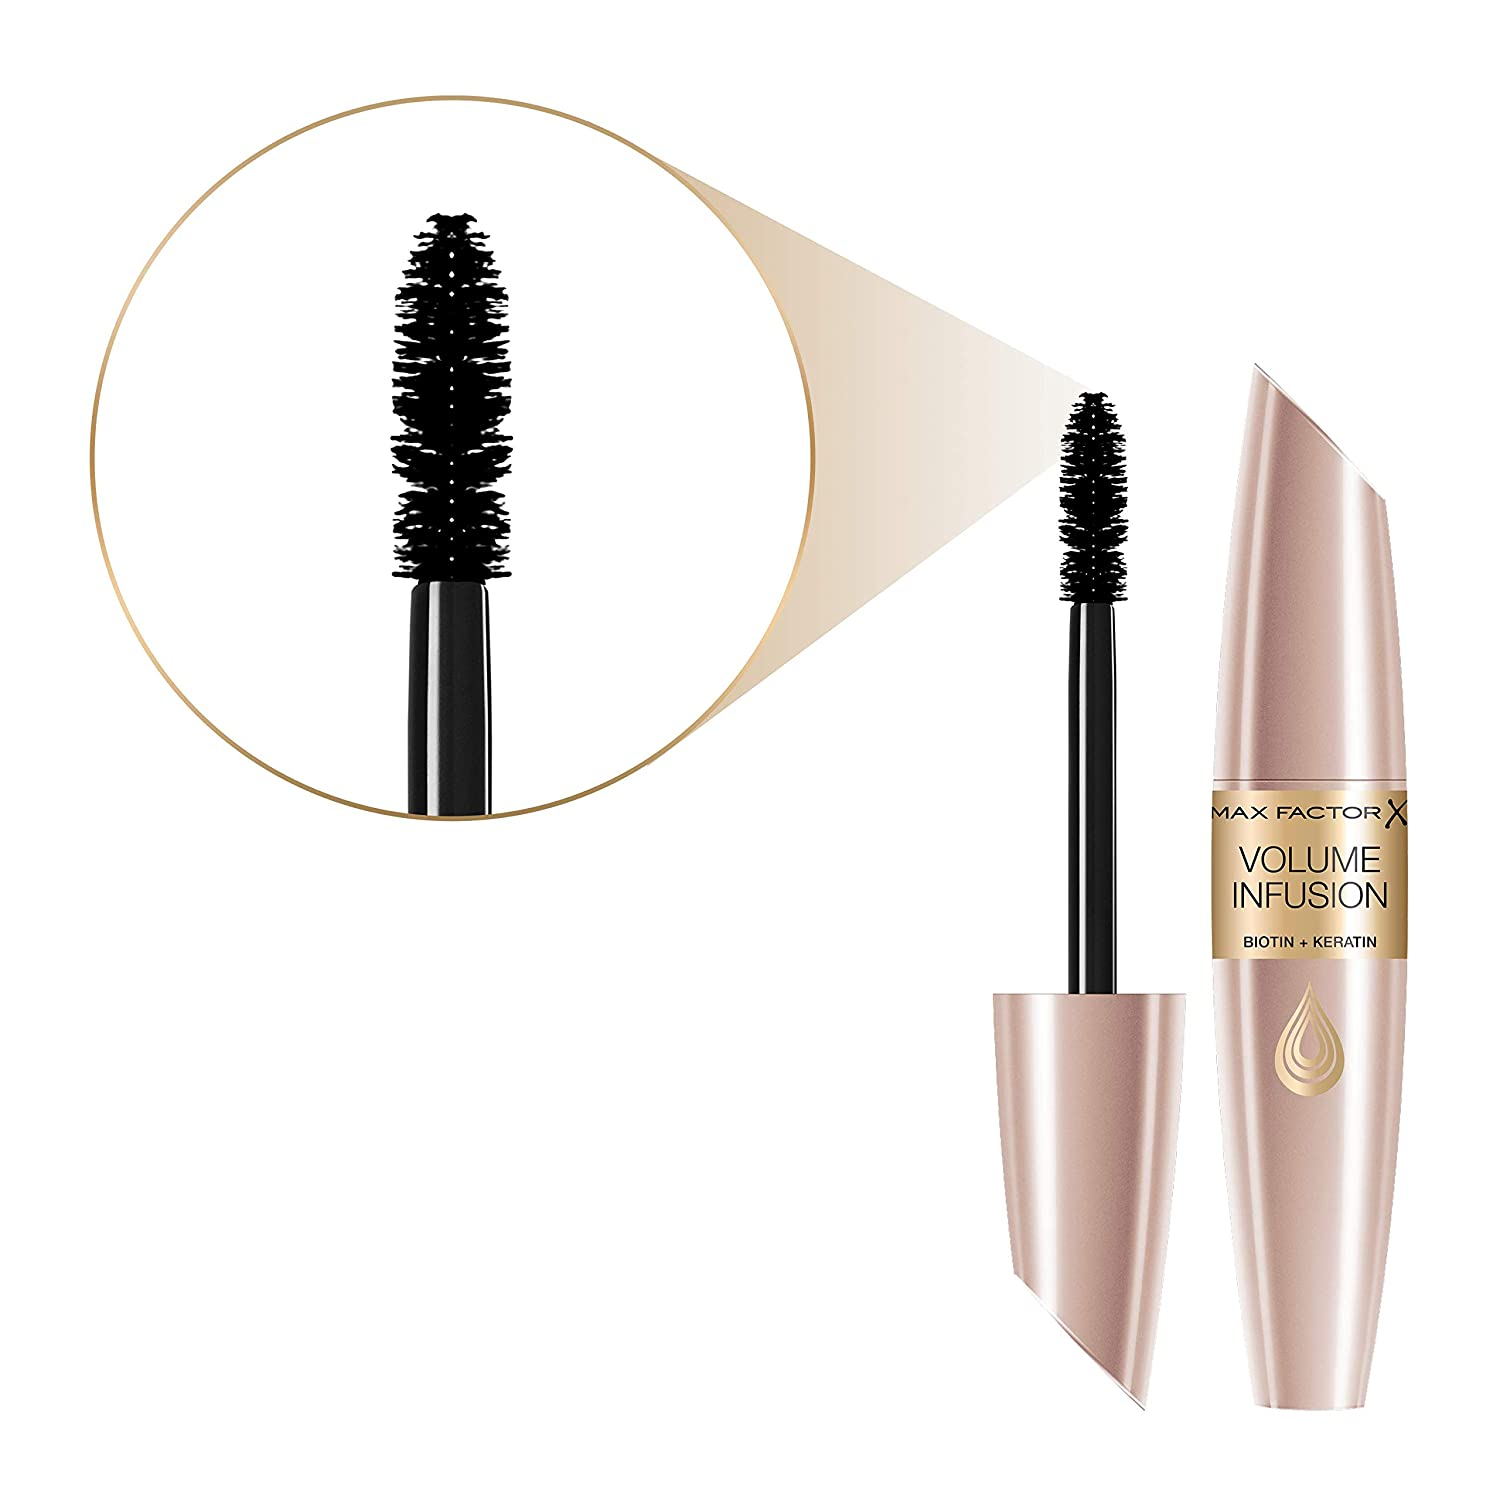 b99a0acd43e Max Factor Volume Infusion Mascara, Black/ Brown: Amazon.co.uk: Beauty